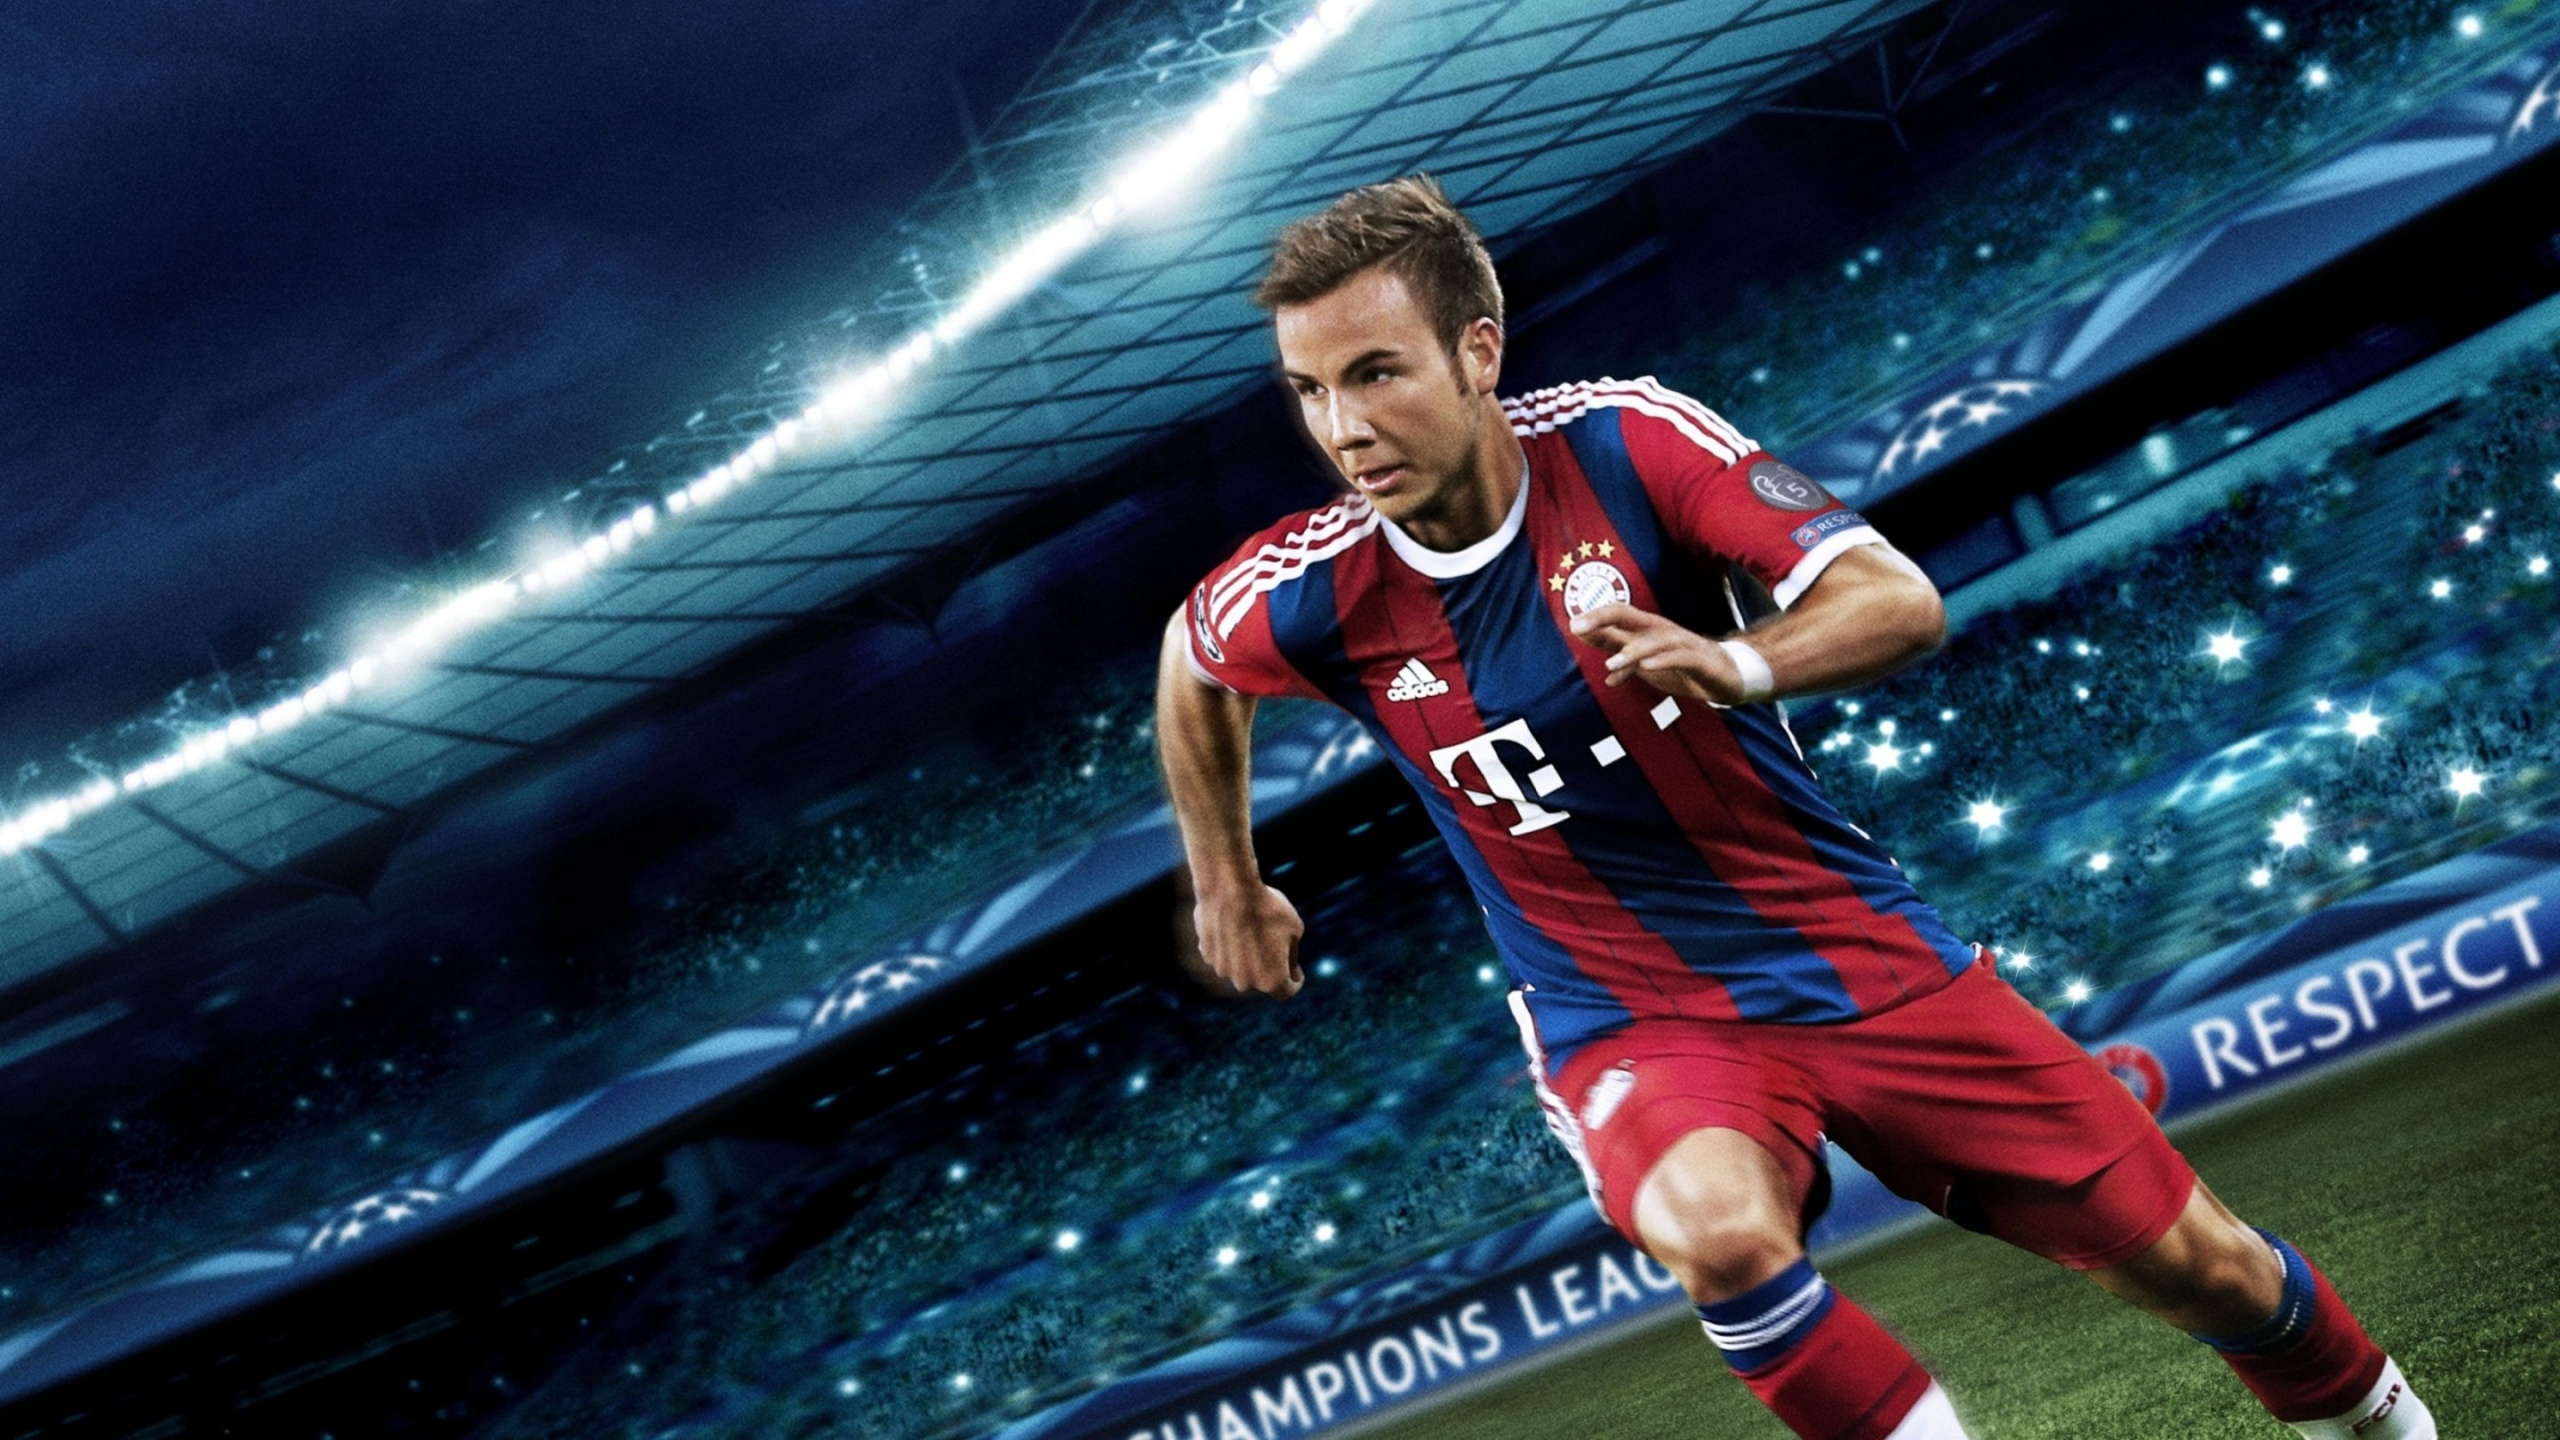 Soccer Wallpapers Backgrounds Pro: Pro Evolution Soccer 2015 Wallpapers